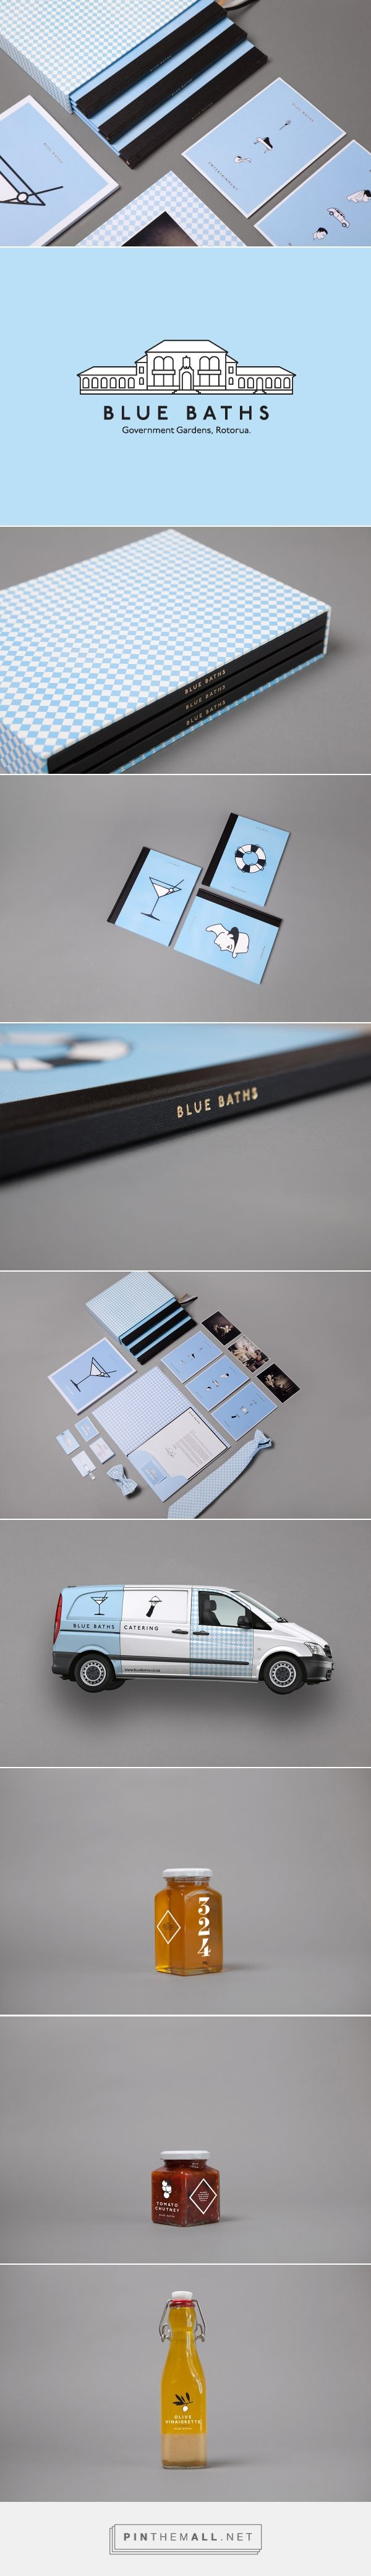 Blue Baths identity packaging branding on Behance by Ryan Romanes curated by Packaging Diva PD. Blue Baths is a heritage listed bathhouse located in Rotorua's Government Gardens.